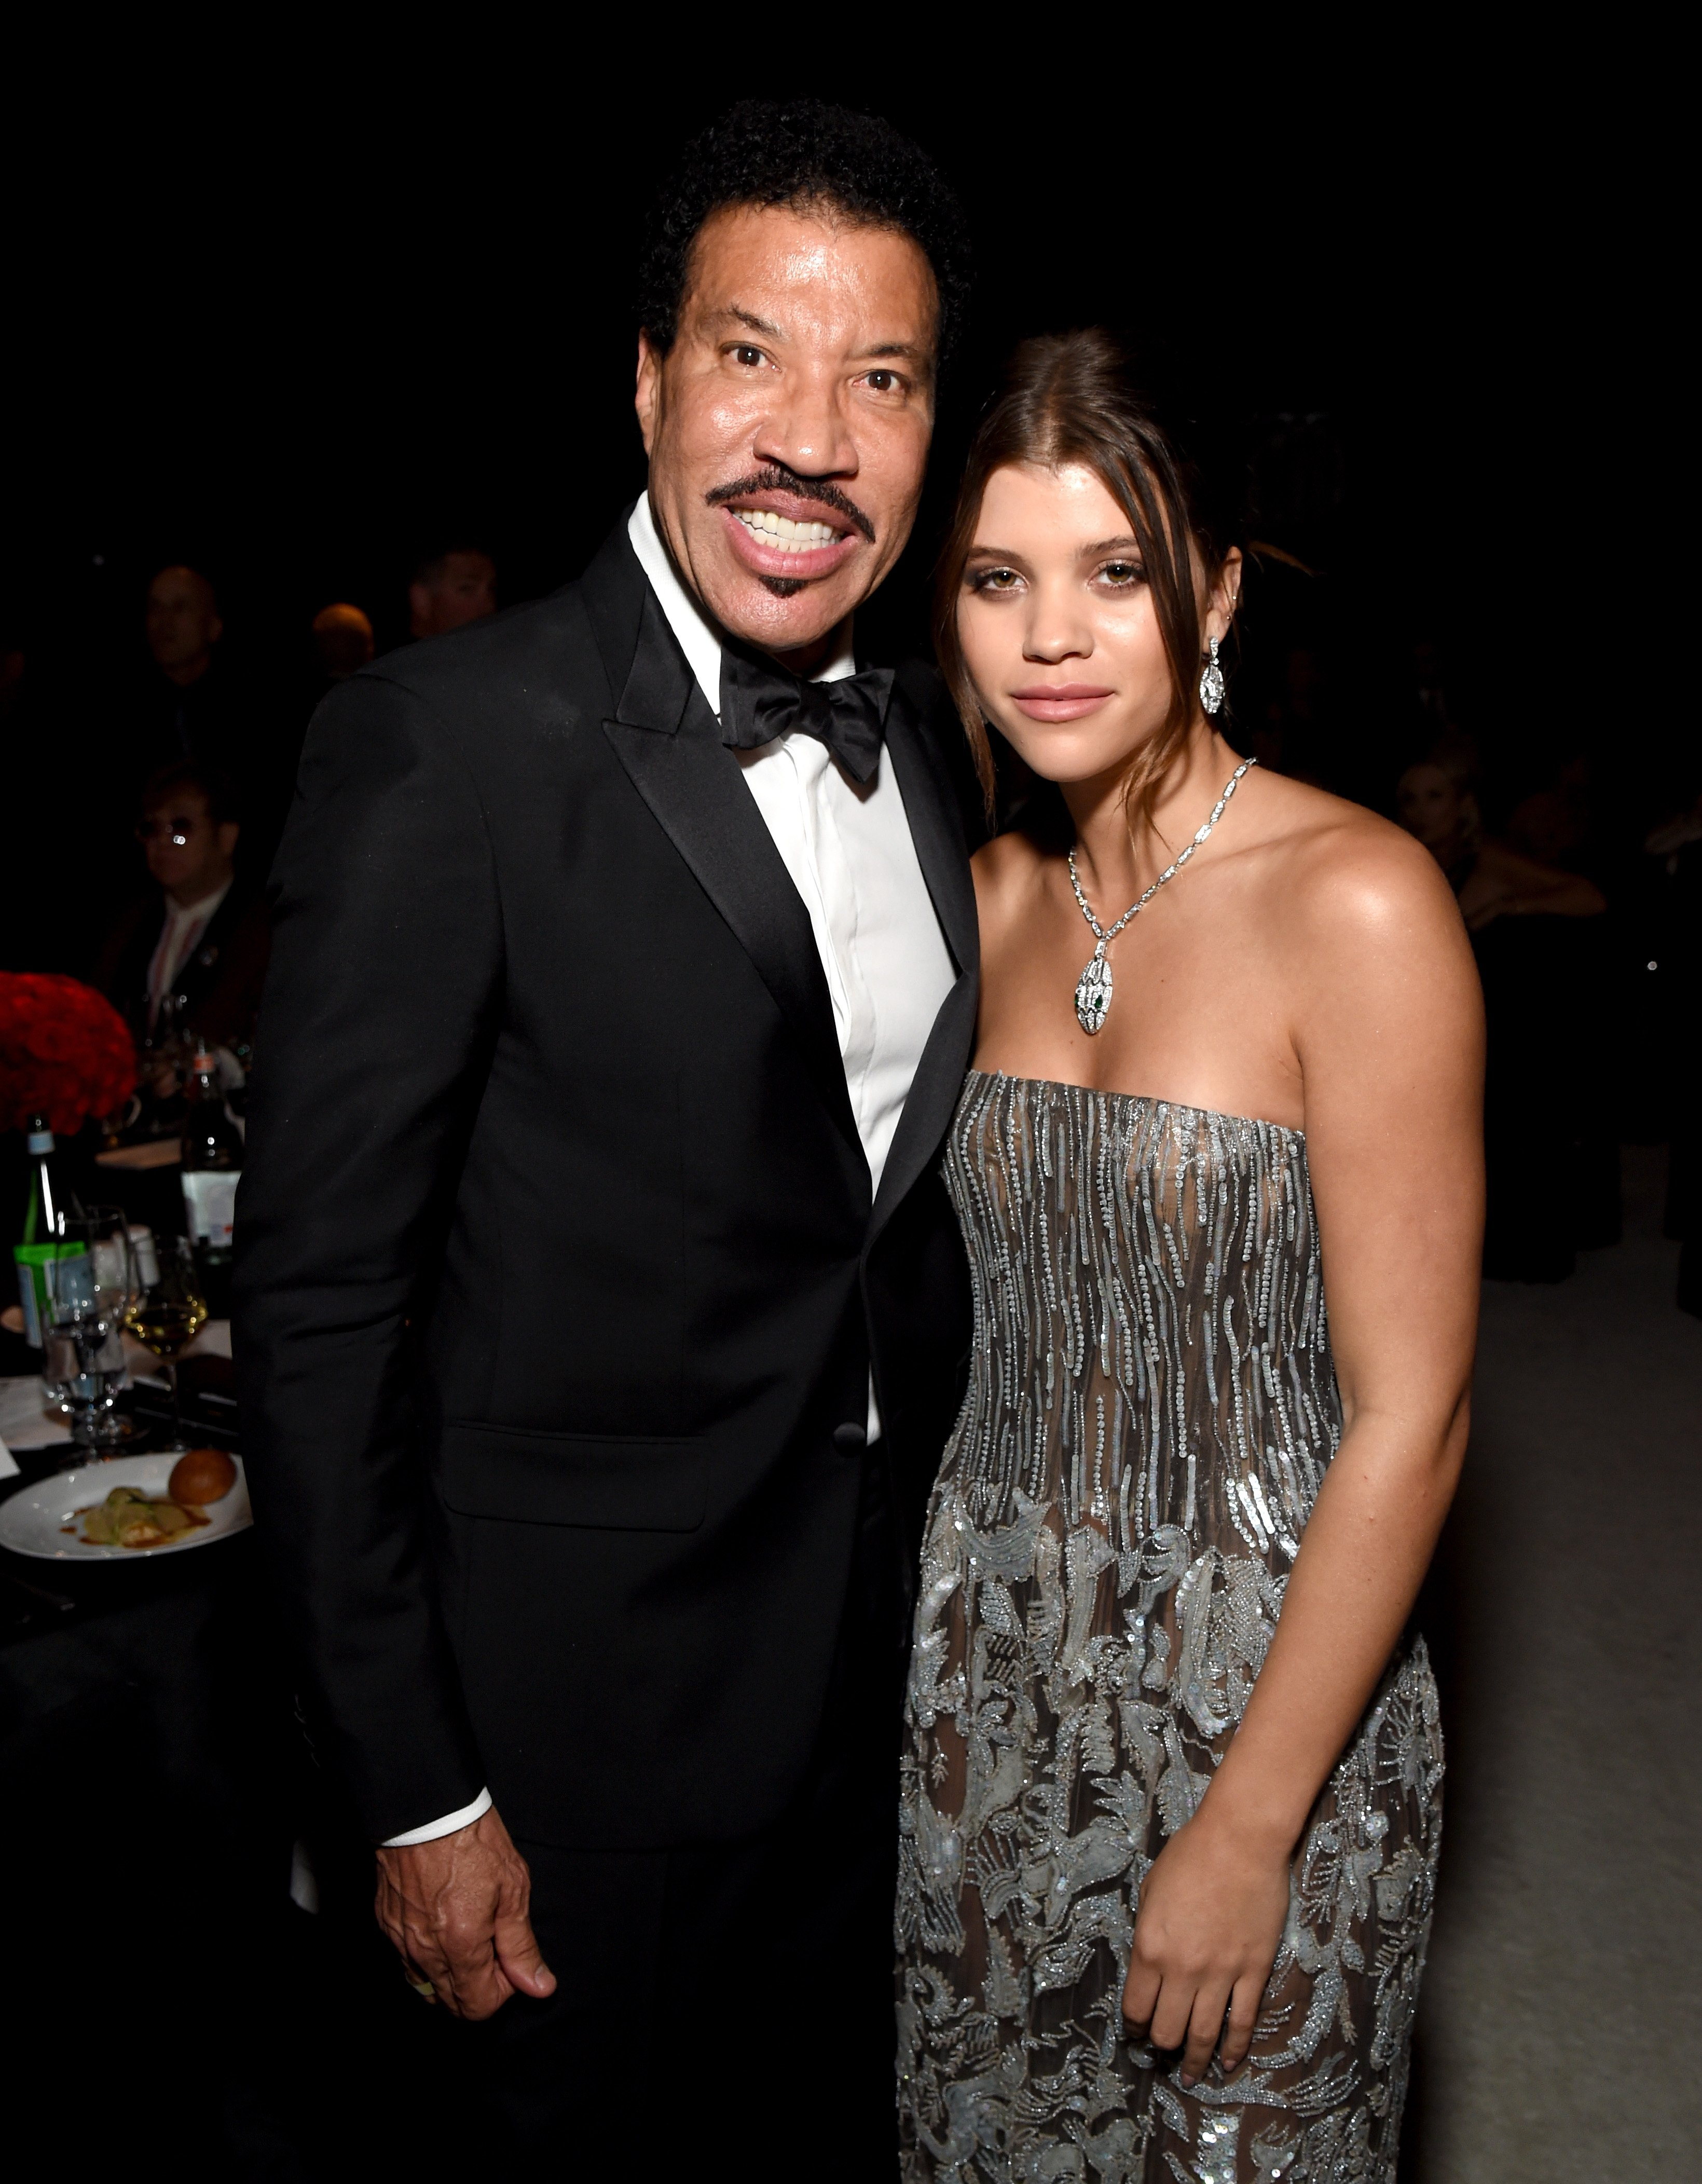 Lionel Richie and Sofia Richie attend the 26th annual Elton John AIDS Foundation Academy Awards Viewing Party on March 4, 2018, in West Hollywood, California. | Source: Getty Images.